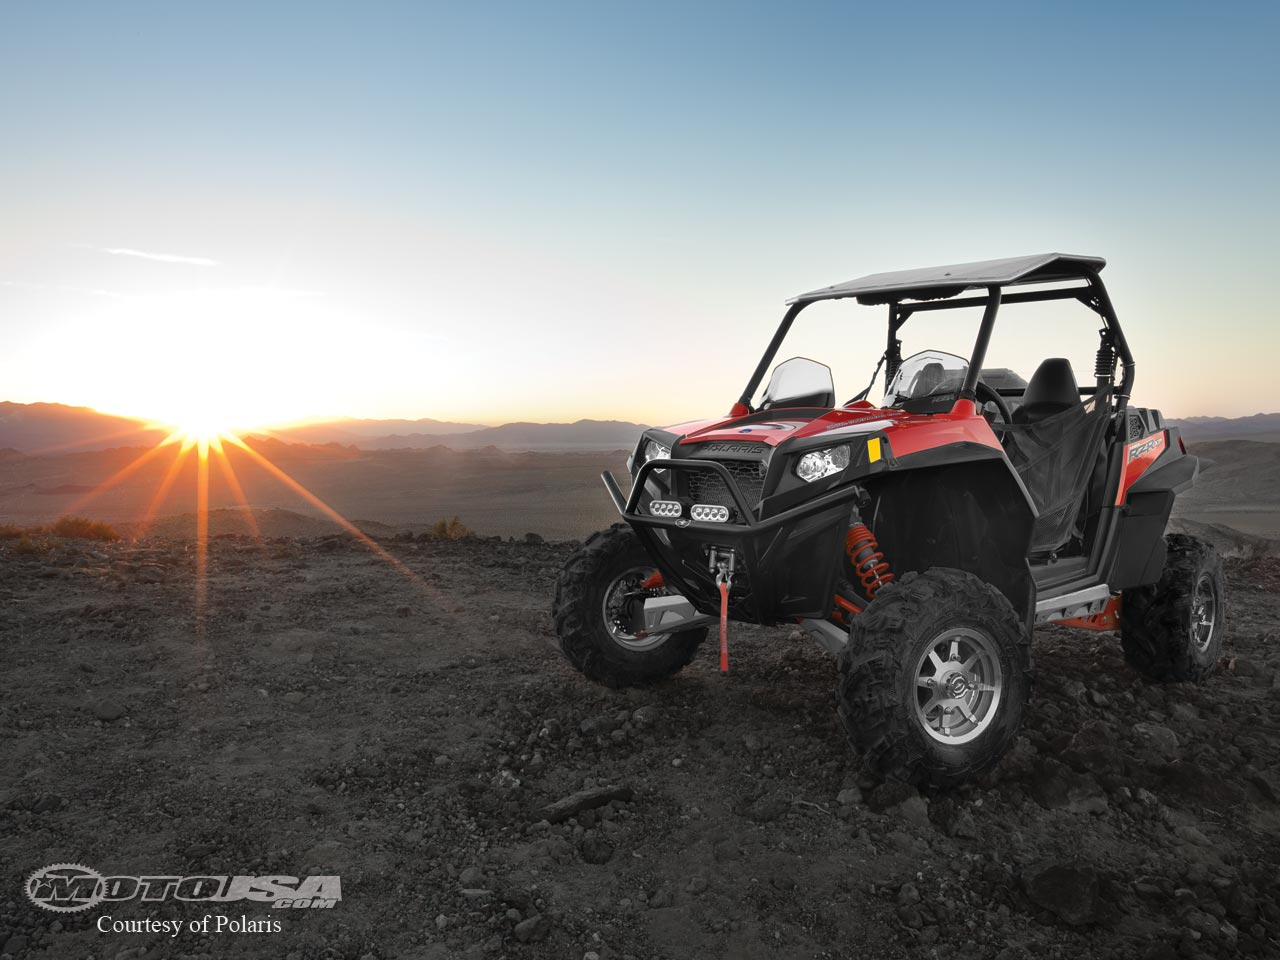 2011 Polaris Ranger RZR XP 900 First Look Picture 1 of 13   Motorcycle 1280x960